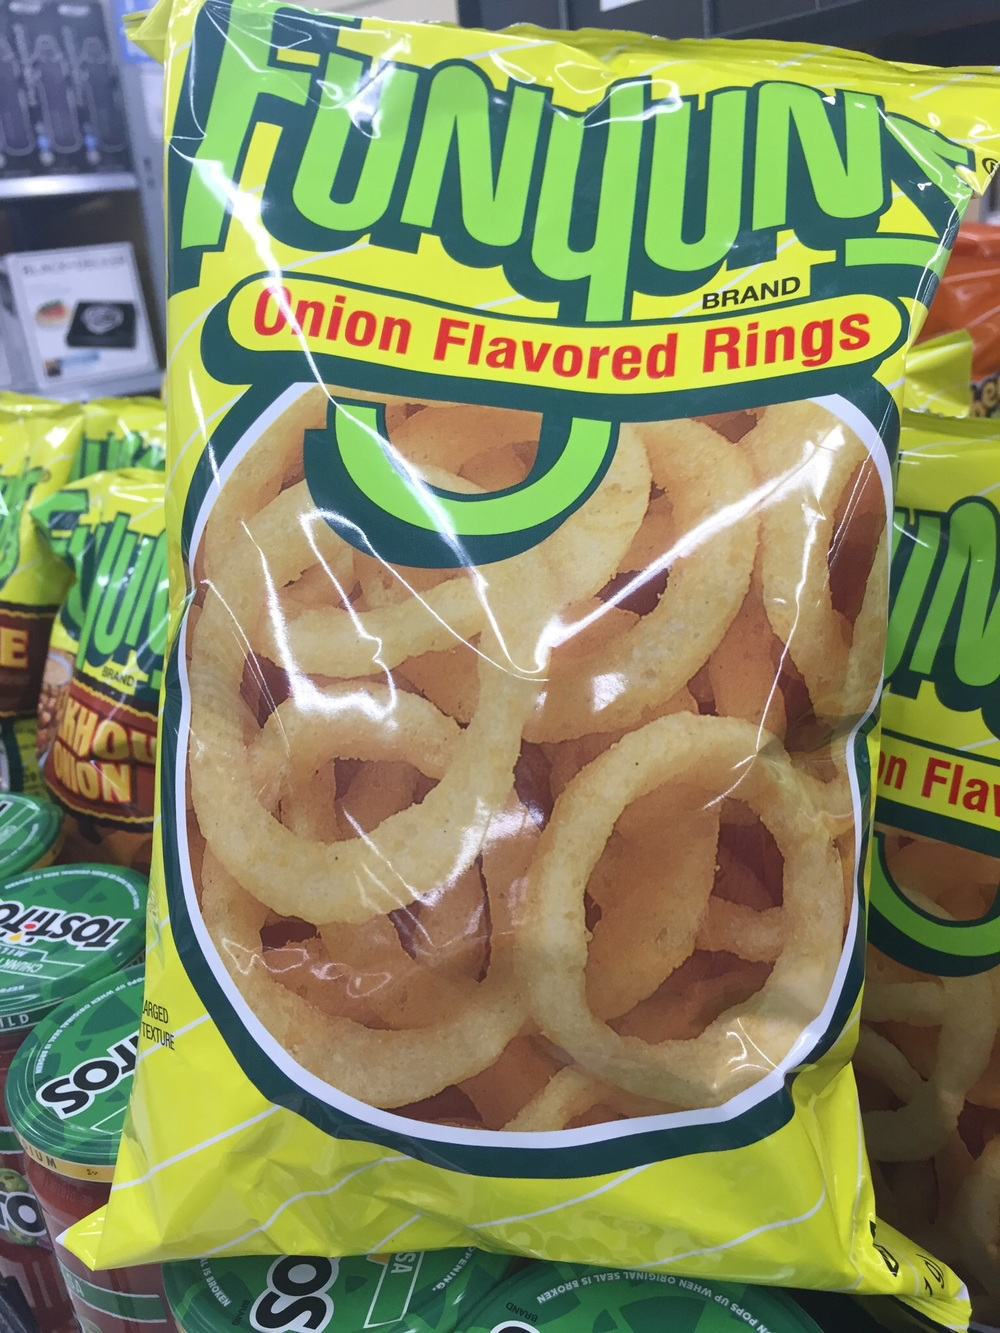 Favorite snack of choice for Mr C, I cannot imagine an onion went anywhere near production.